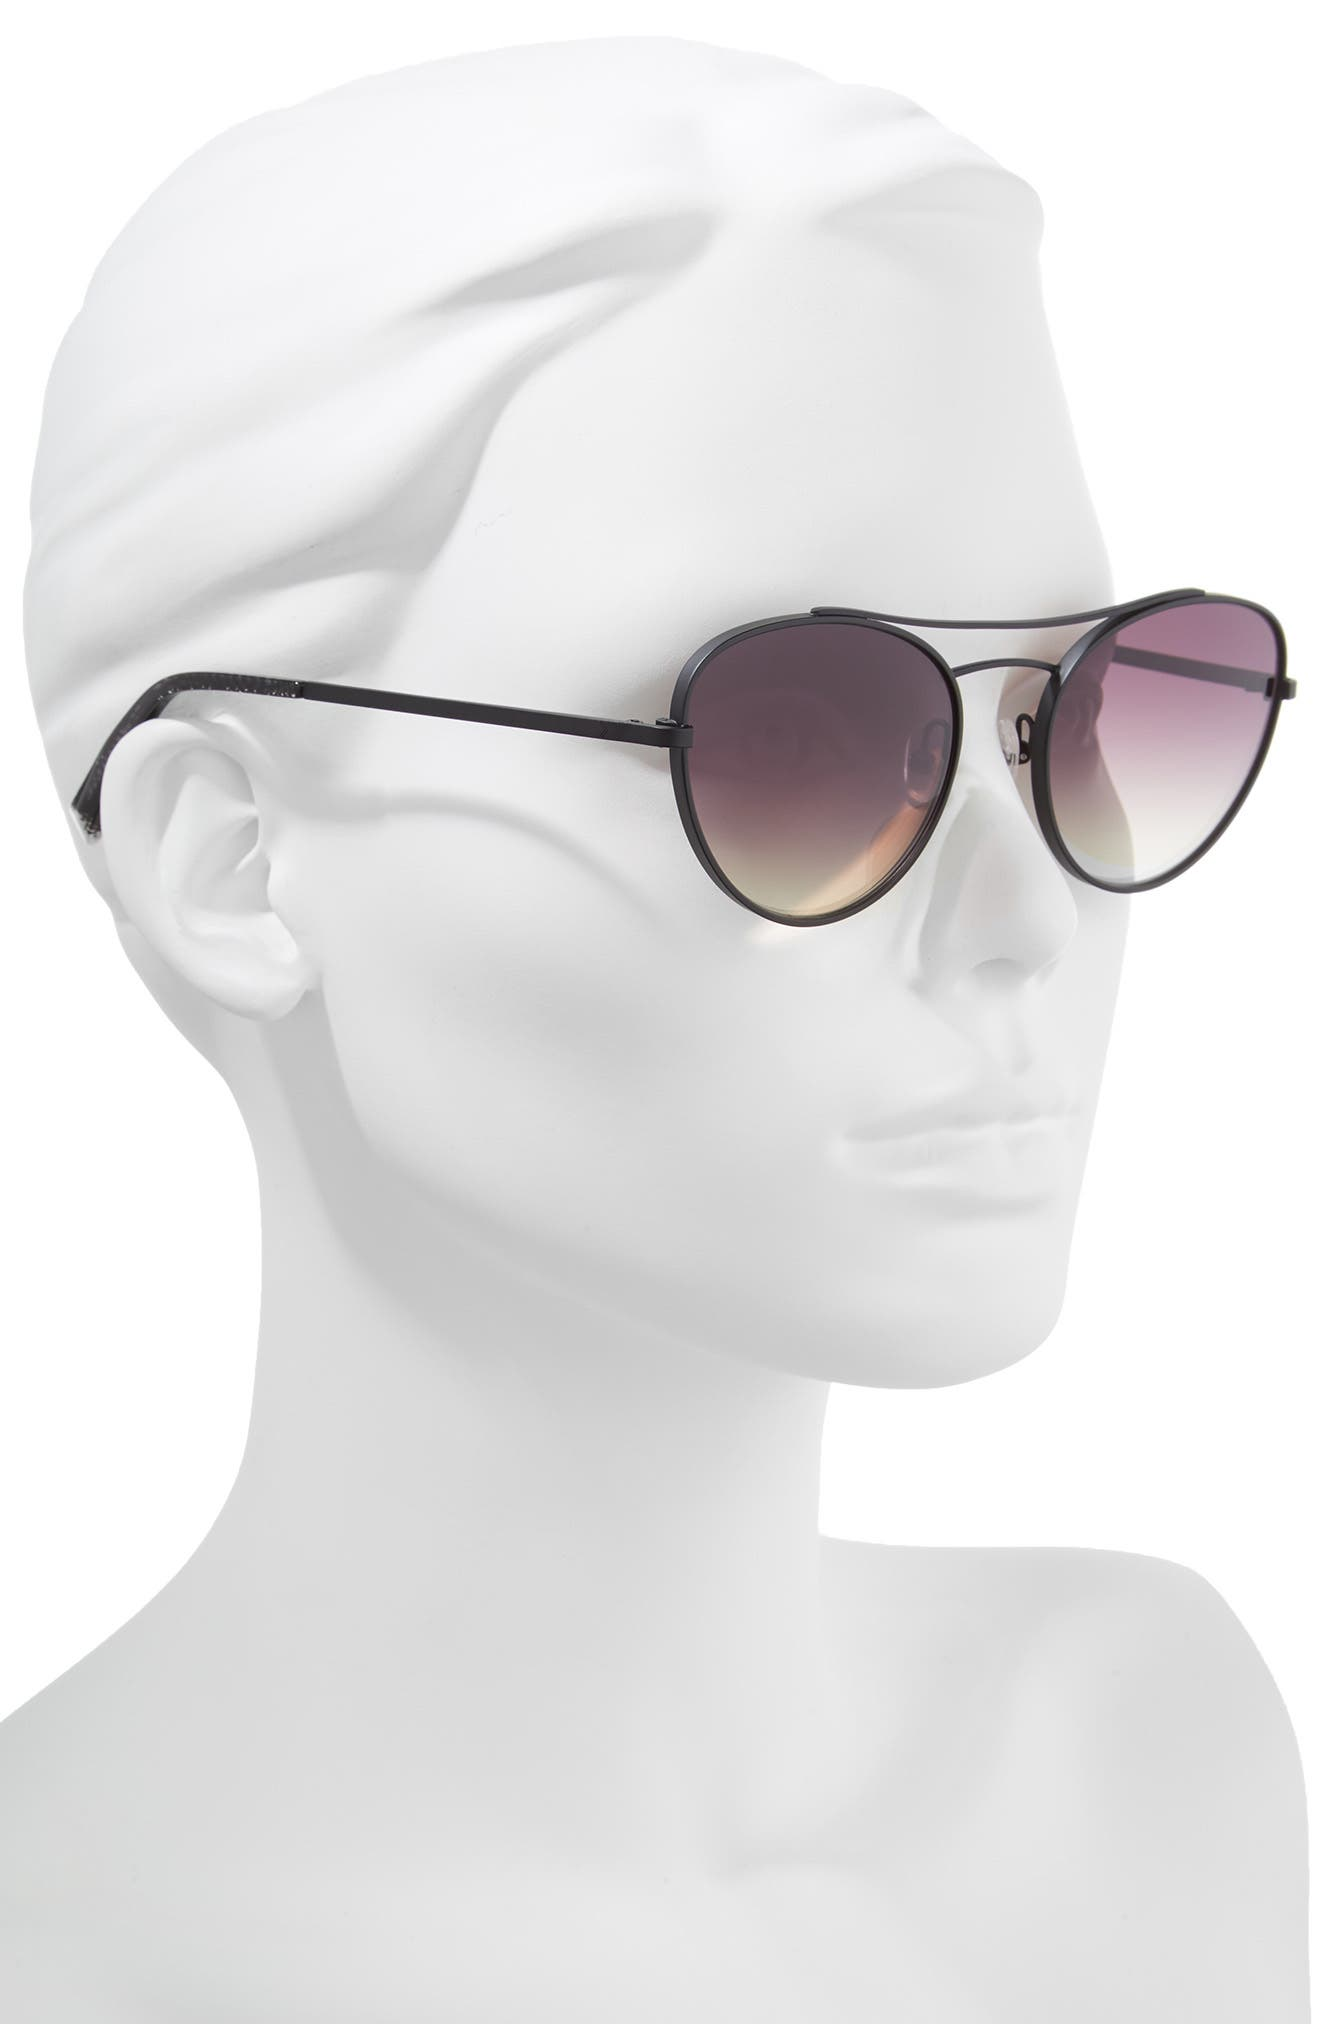 722c740e99cbf Women s Sunglasses Sale